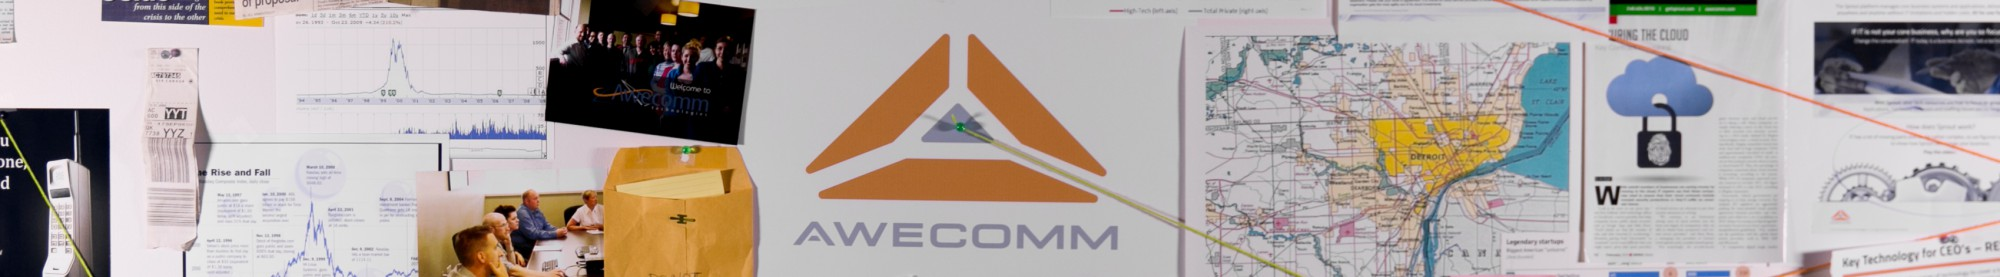 Awecomm Insights: The C-Level Source to Navigate Business Tech